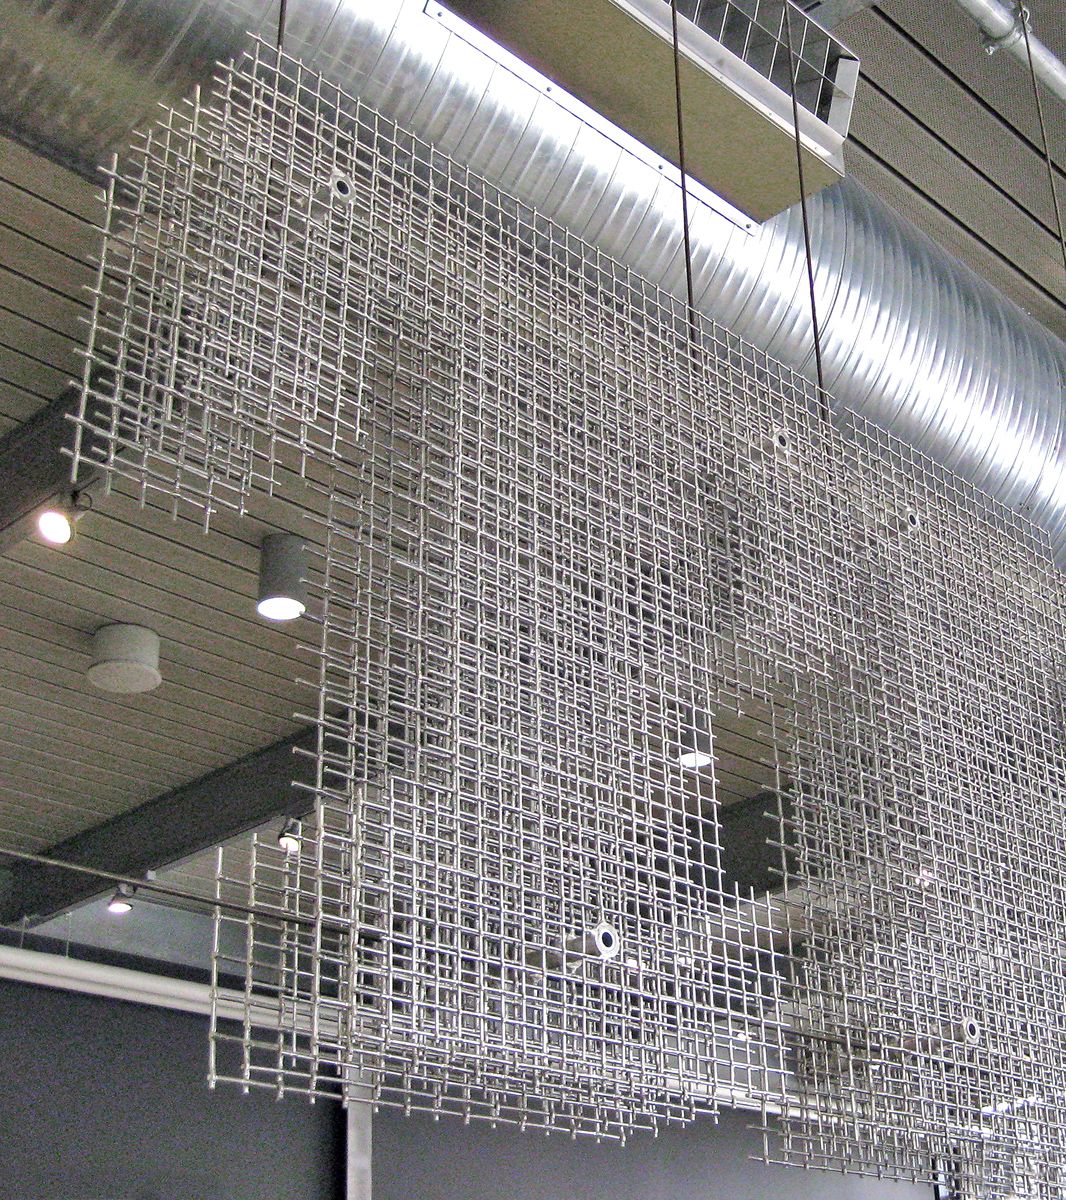 A variety of Banker Wire mesh patterns create this layered, sculptured sign.